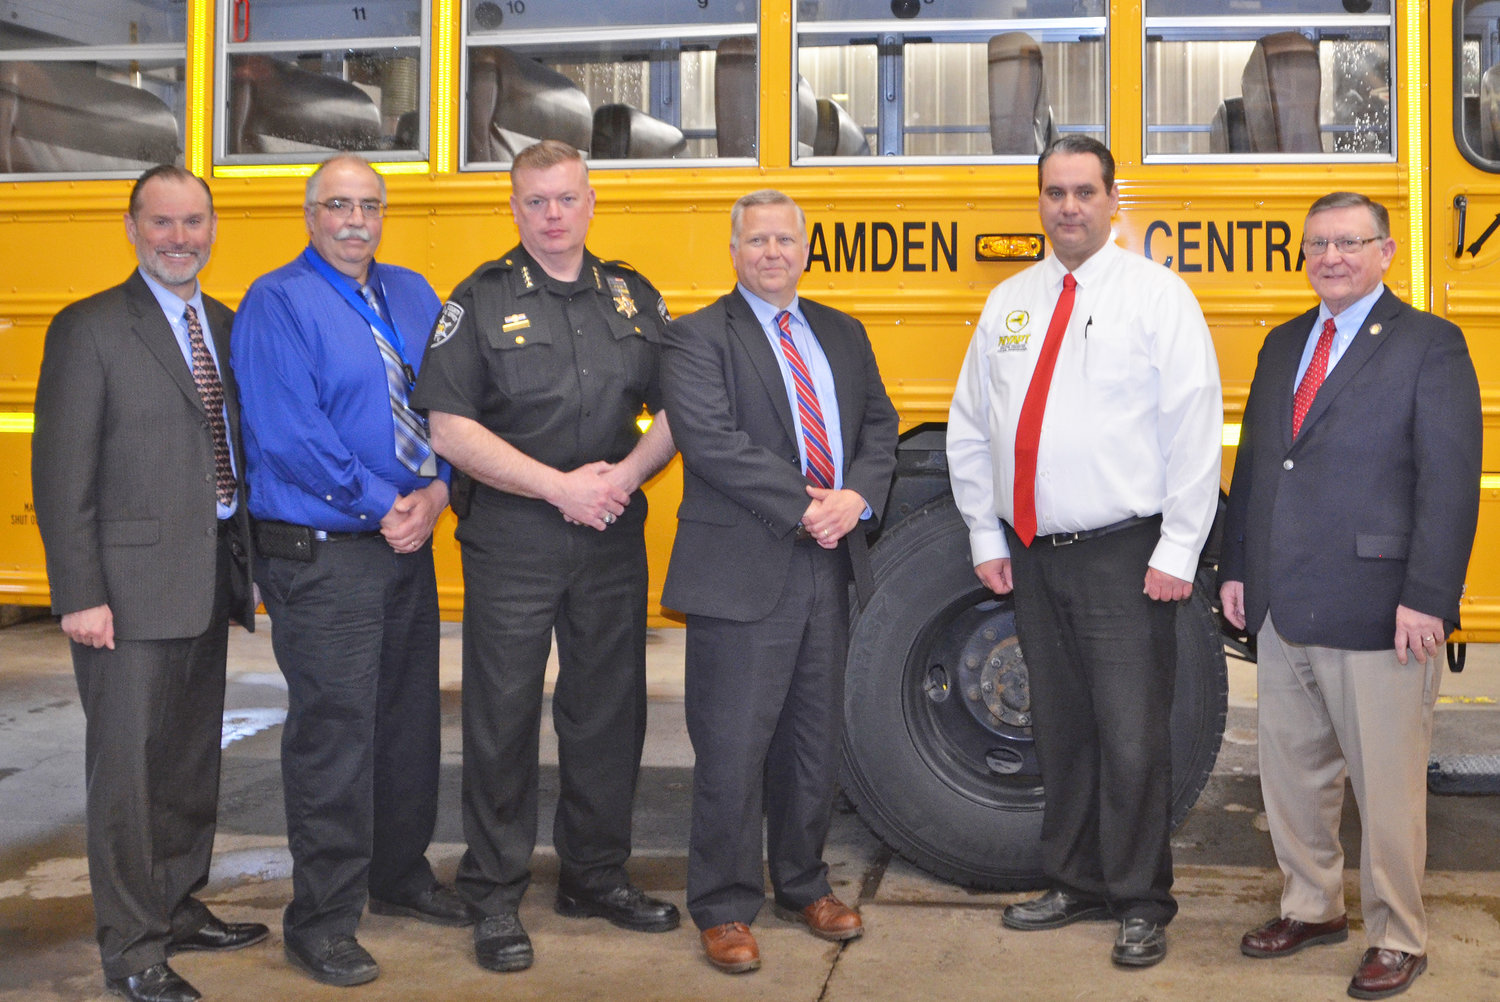 OPERATION SAFE STOP EVENT — Among those attending an event hosted by the Camden school district in conjunction with Operation Safe Stop for bus safety, from left: Camden district Assistant Superintendent for Business Karl Keil Jr.; Camden district Transportation Director Ed Snow; Oneida County Sheriff Robert Maciol; Camden district Superintendent Ravo Root; New York Association for Pupil Transportation President Michael Sweeney, who also is transportation director for the Westmoreland school district; Assemblyman Kenneth Blankenbush, R-117.